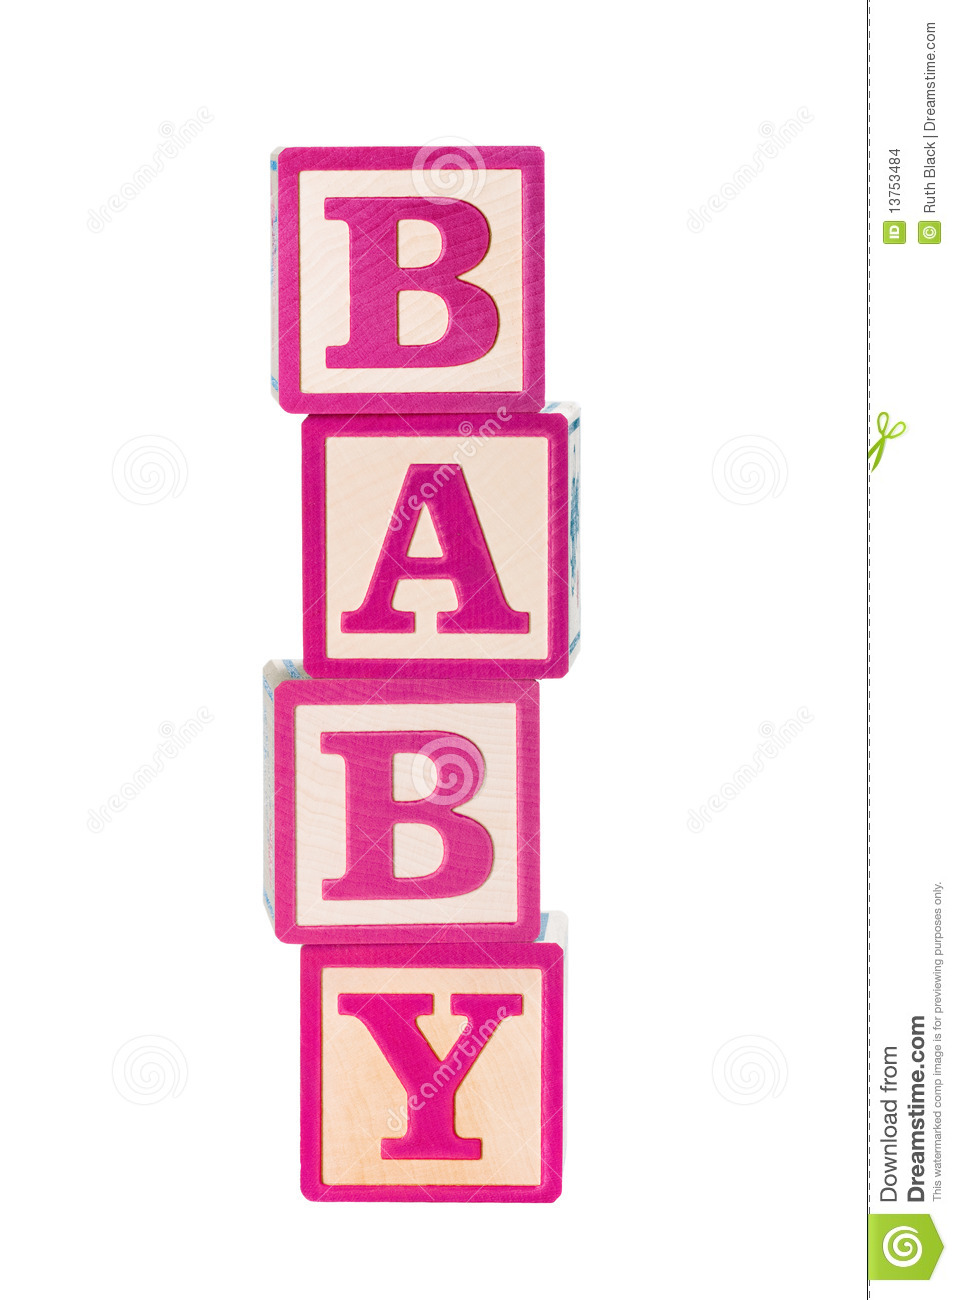 Baby Building Blocks Stock Images   Image  13753484